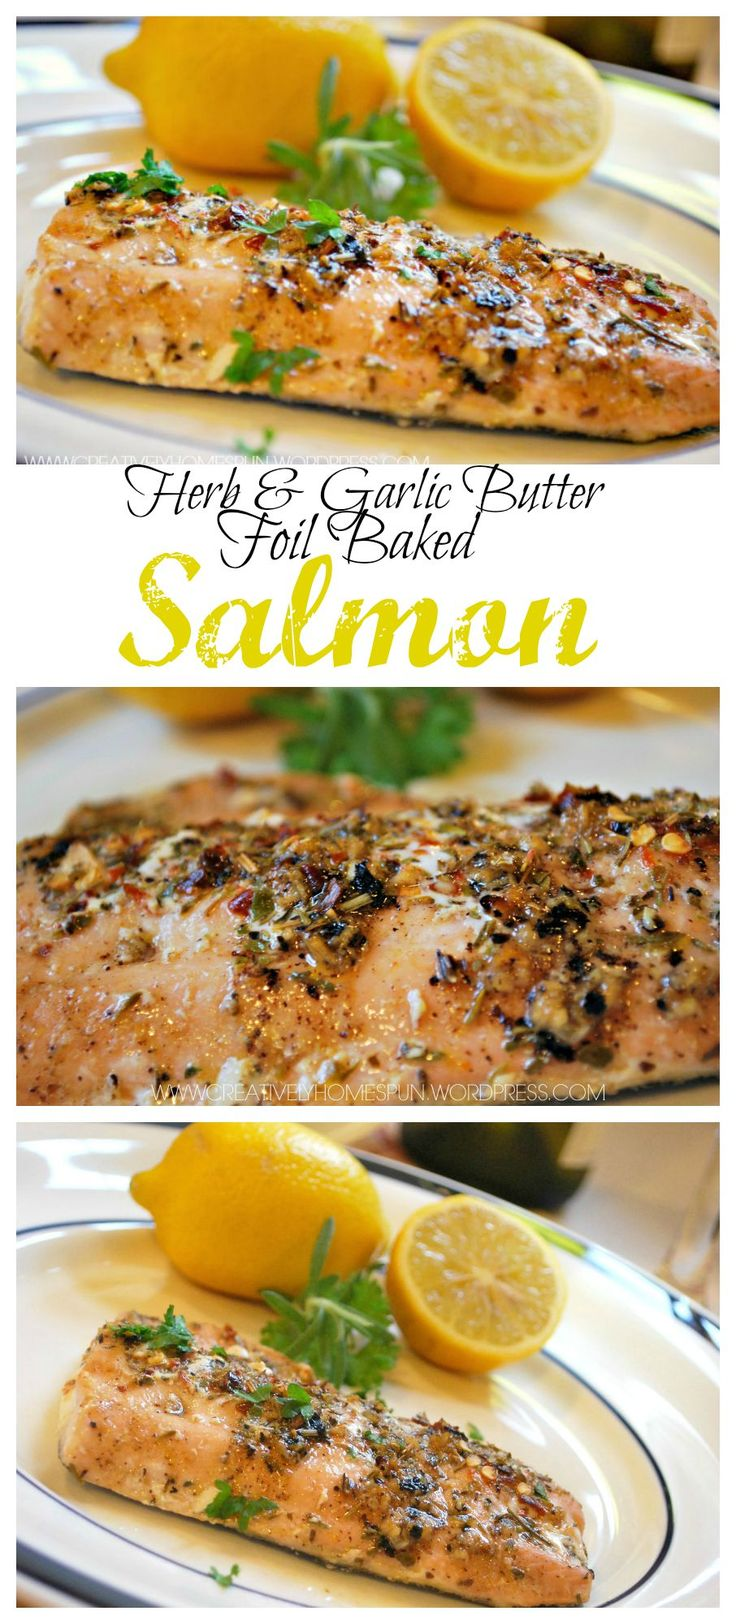 Herb Garlic Butter Foil Baked Salmon #dinner #delicious